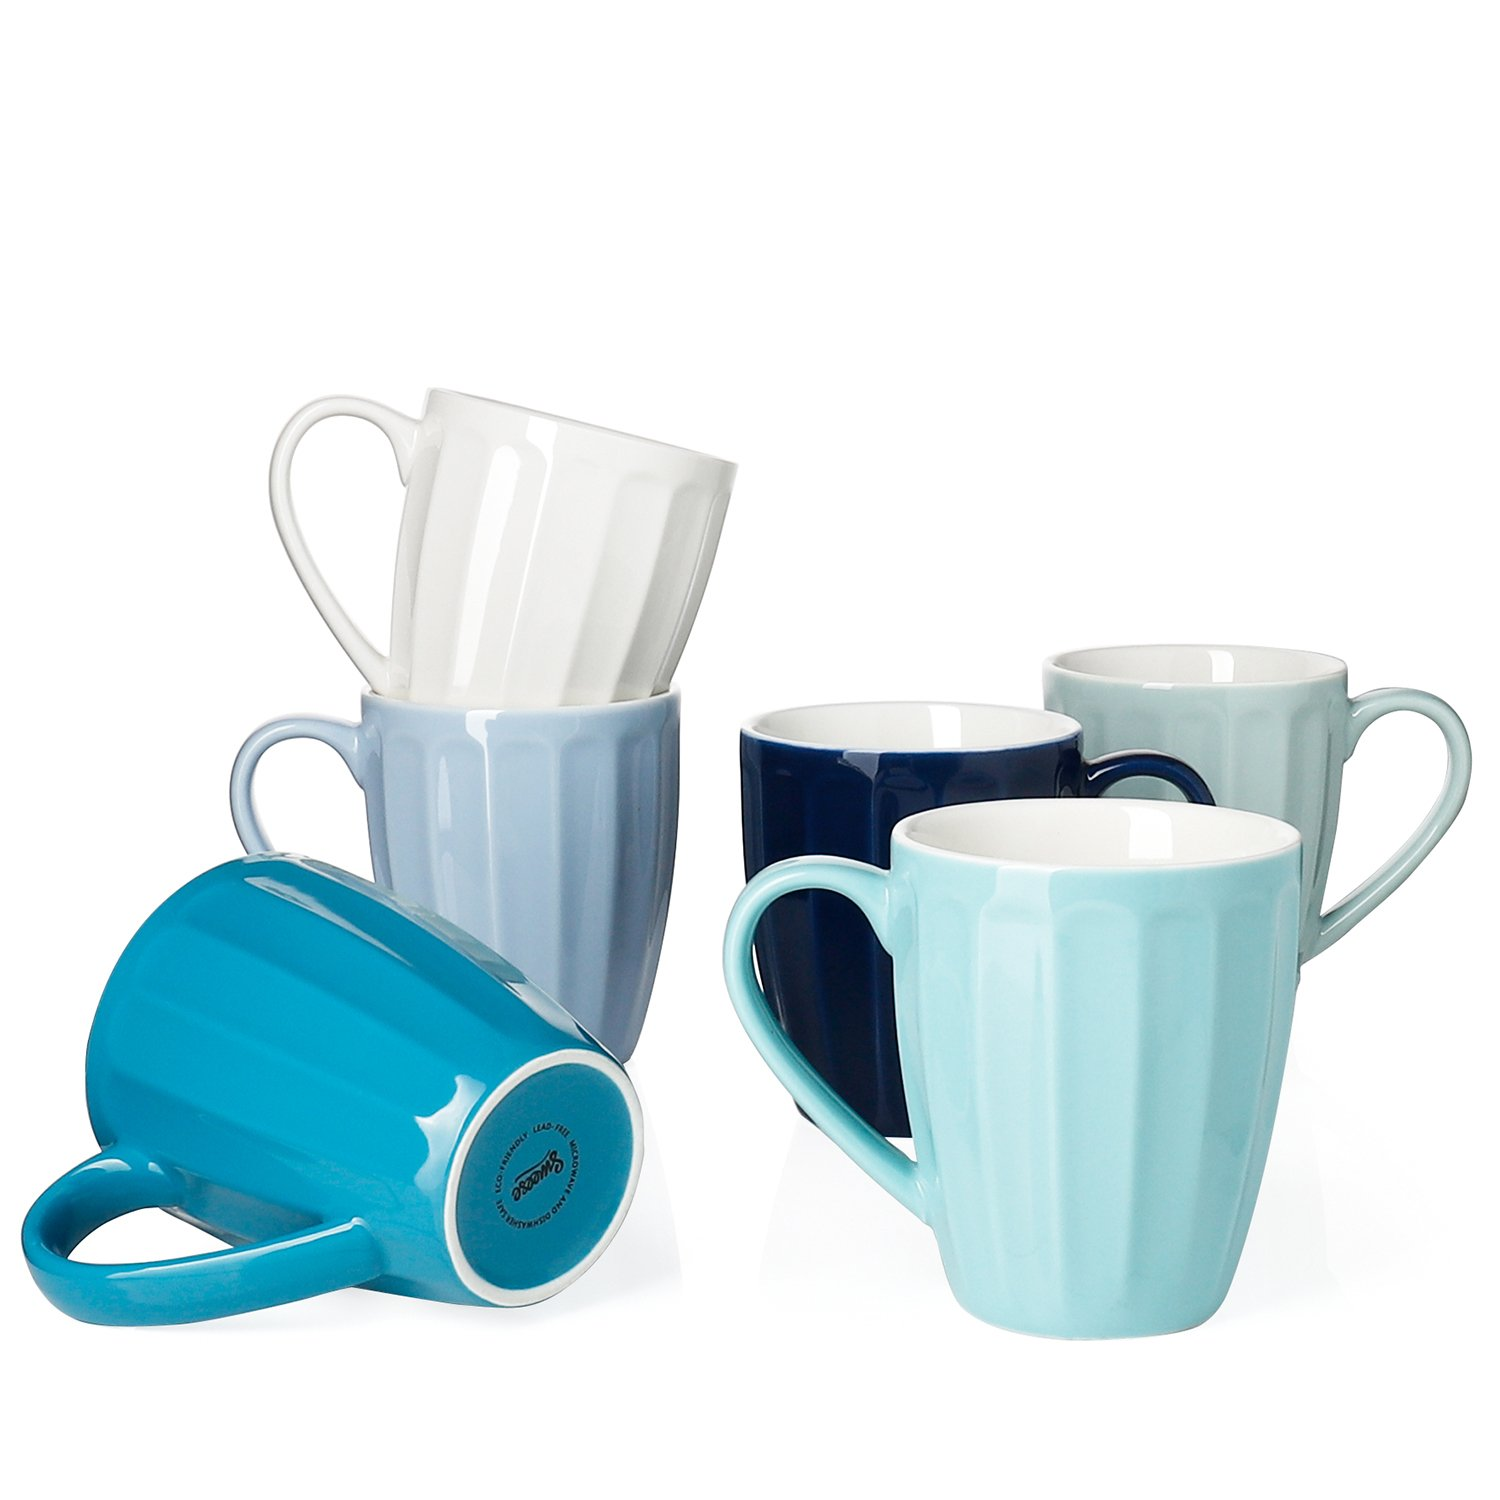 Sweese 6210 Porcelain Mugs - 14 Ounce for Coffee, Tea, Cocoa, Set of 6, Fluted mugs, Cold Assorted Colors